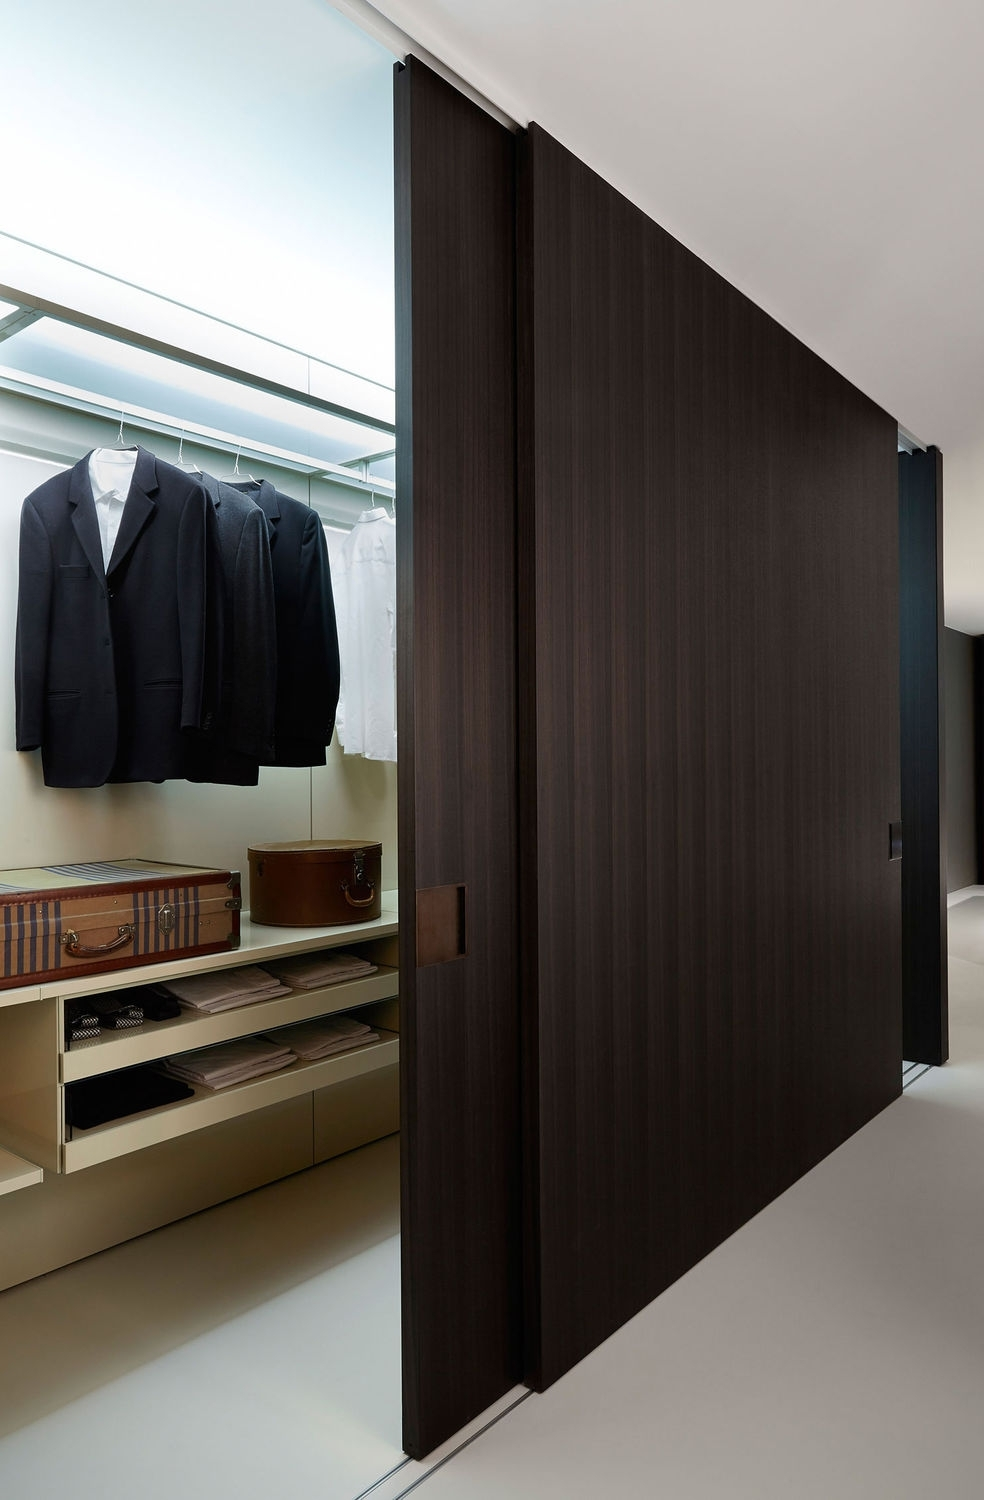 Wardrobes #closet #armoire Storage, Hardware, Accessories For Inside Latest Dark Wood Wardrobes With Sliding Doors (View 14 of 15)